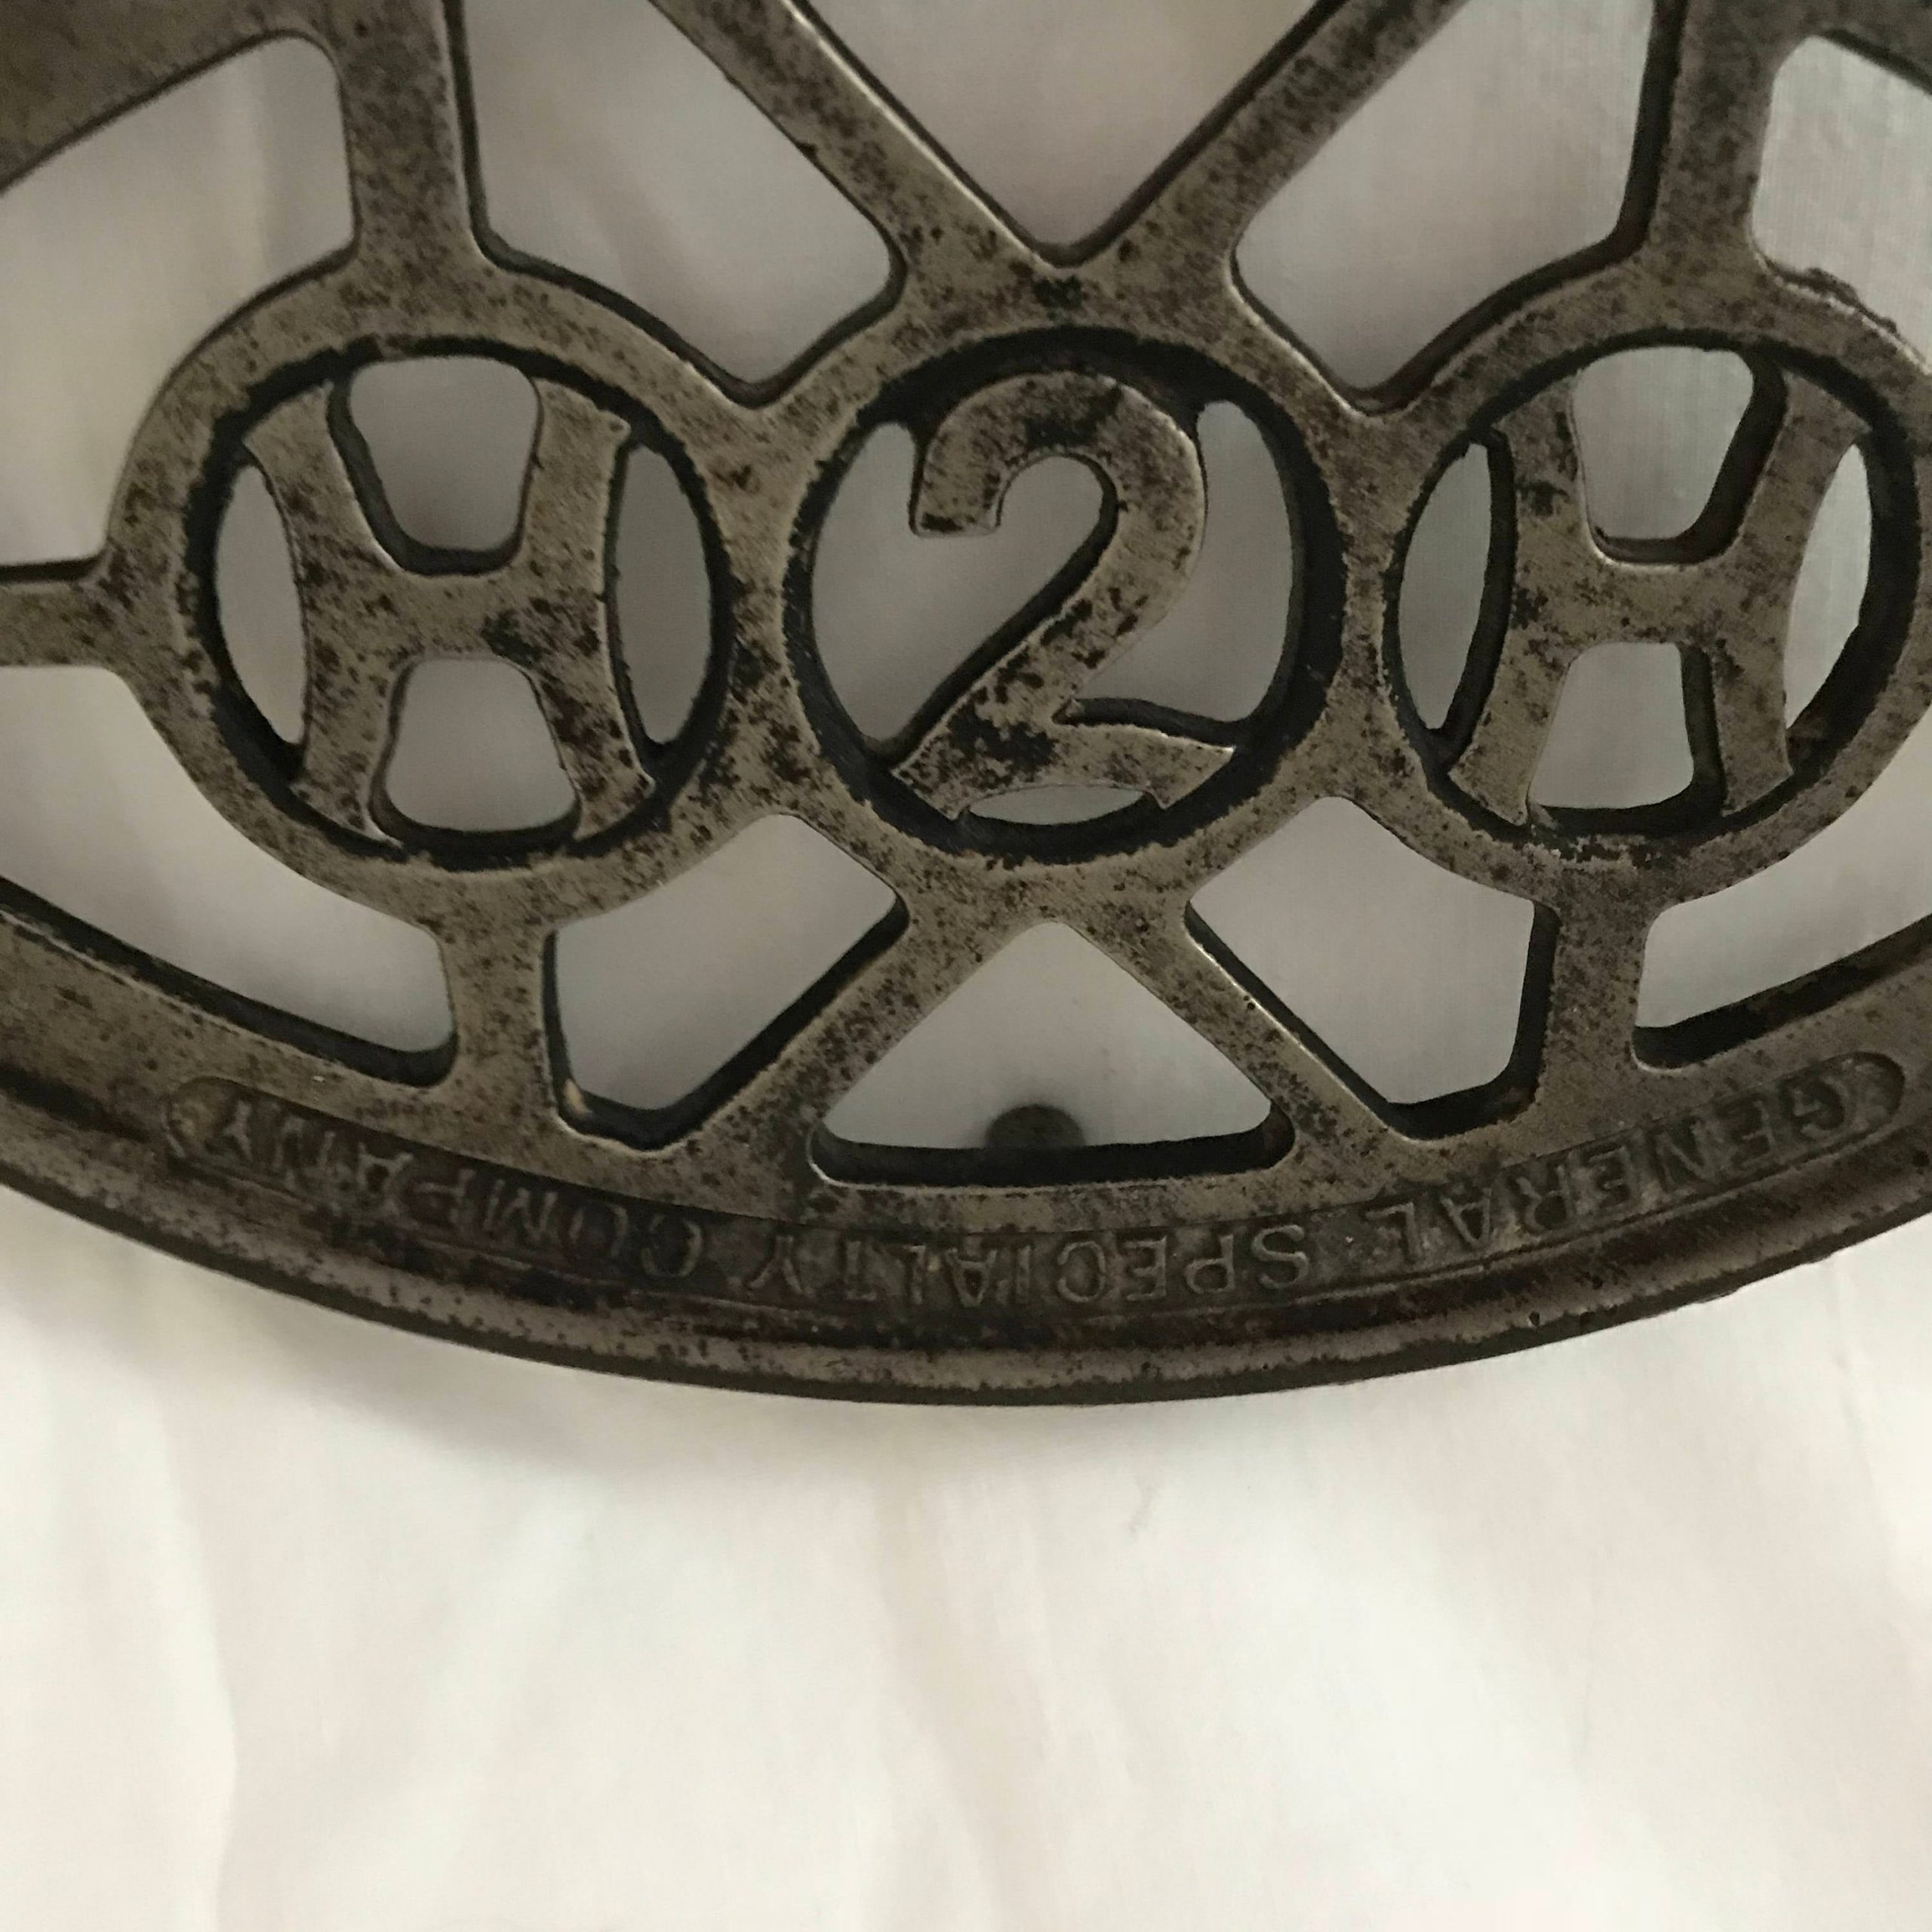 Cast Iron Trivet Iron Holder General Specialty Company Humphrey Gas Iron Holder Antique Collectible Display Laundry Room Wall Decor Carol S True Vintage And Antiques